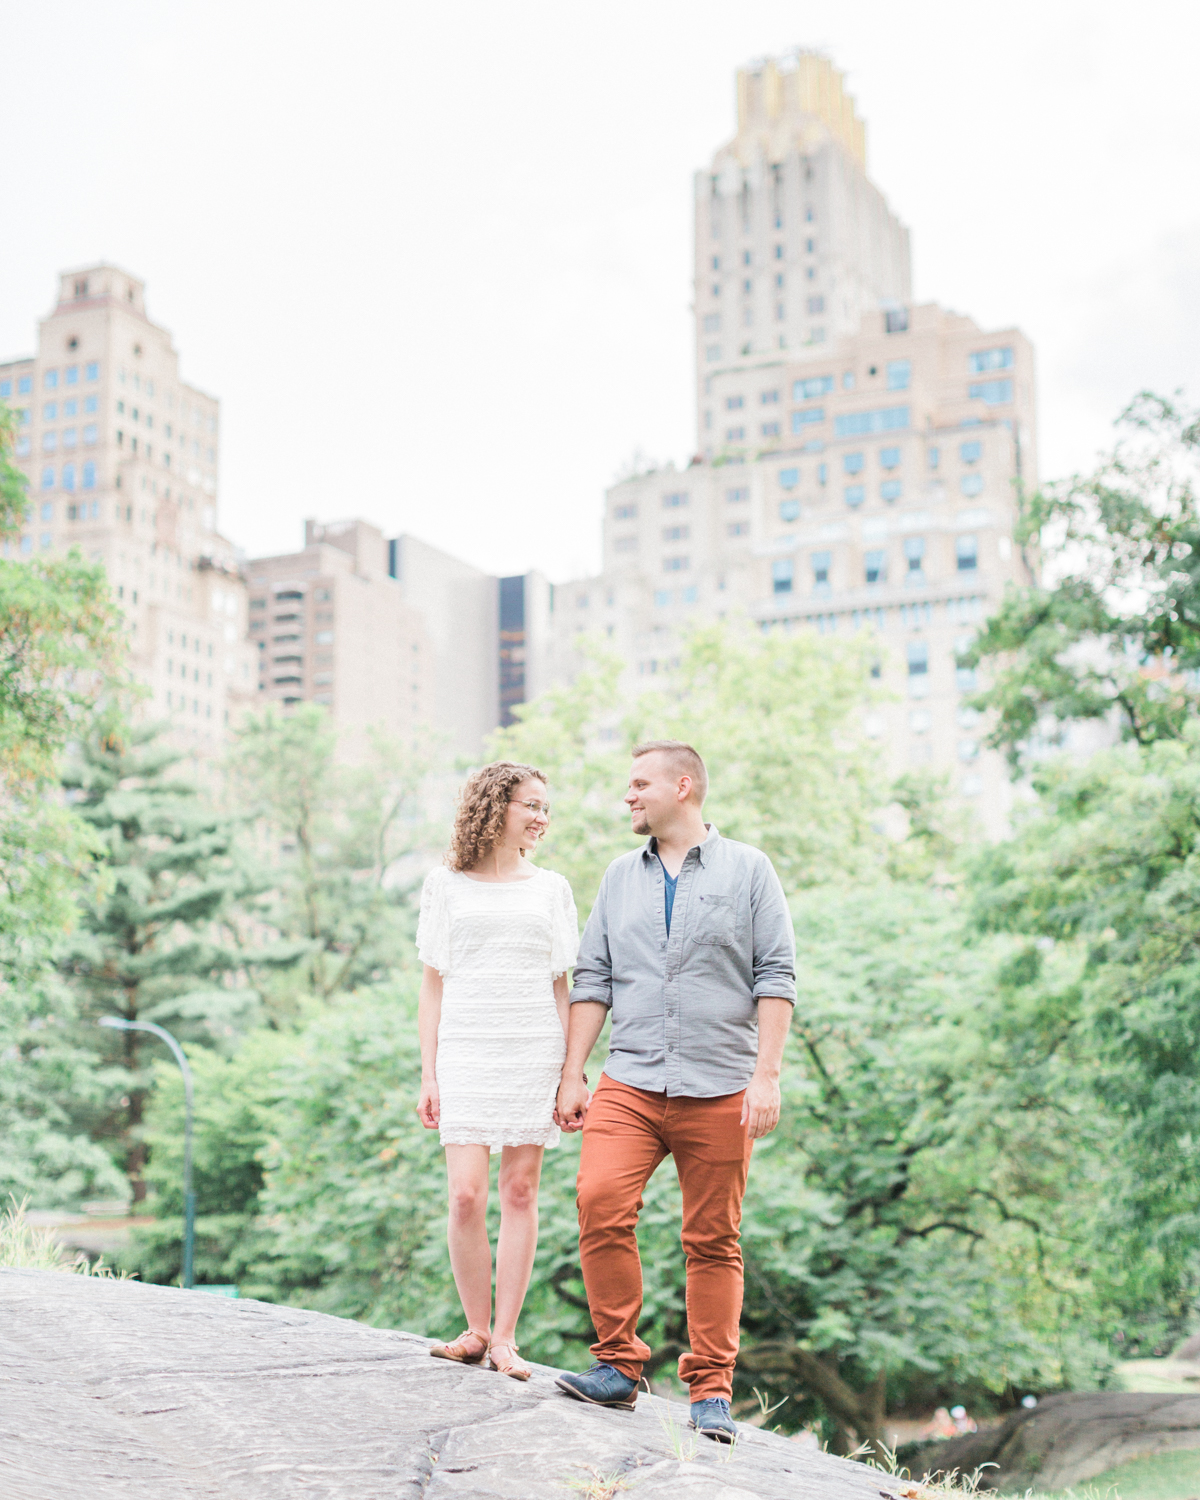 Calgary-Engagement-Photograoher-central-park-session-nyc1.jpg